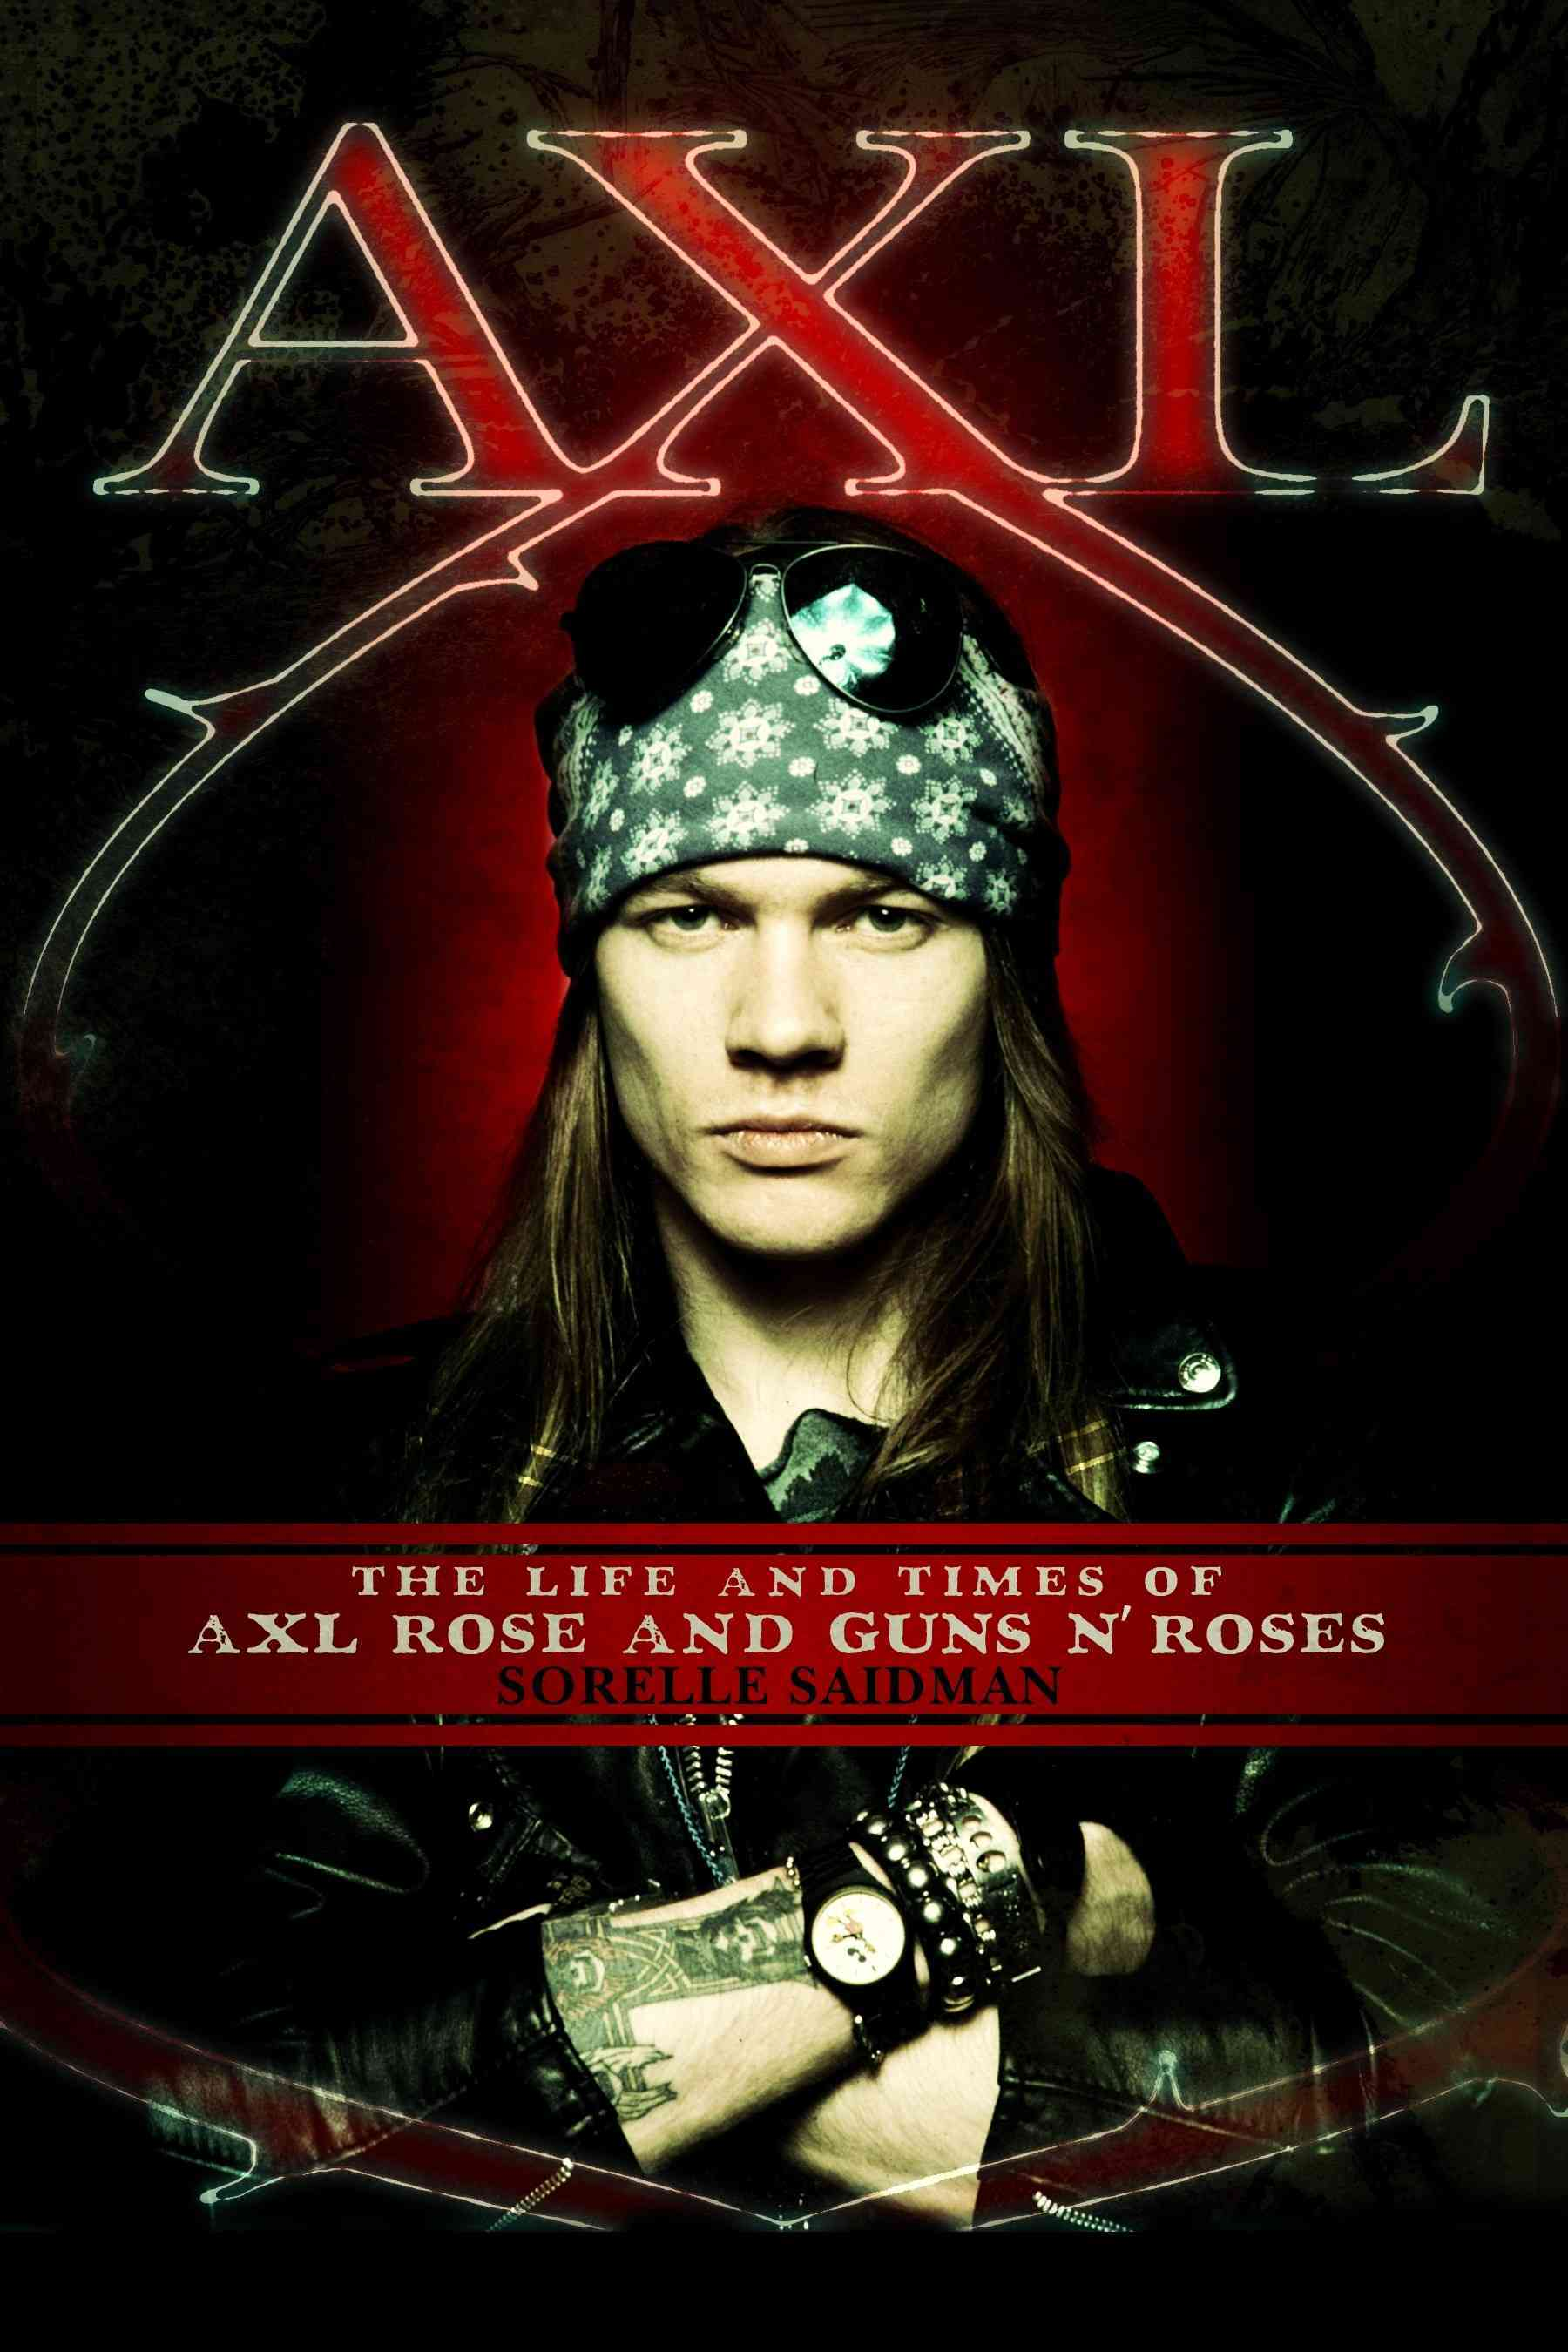 Axl: The Life And Times of Axl Rose And Guns N' Roses (Hardcover)